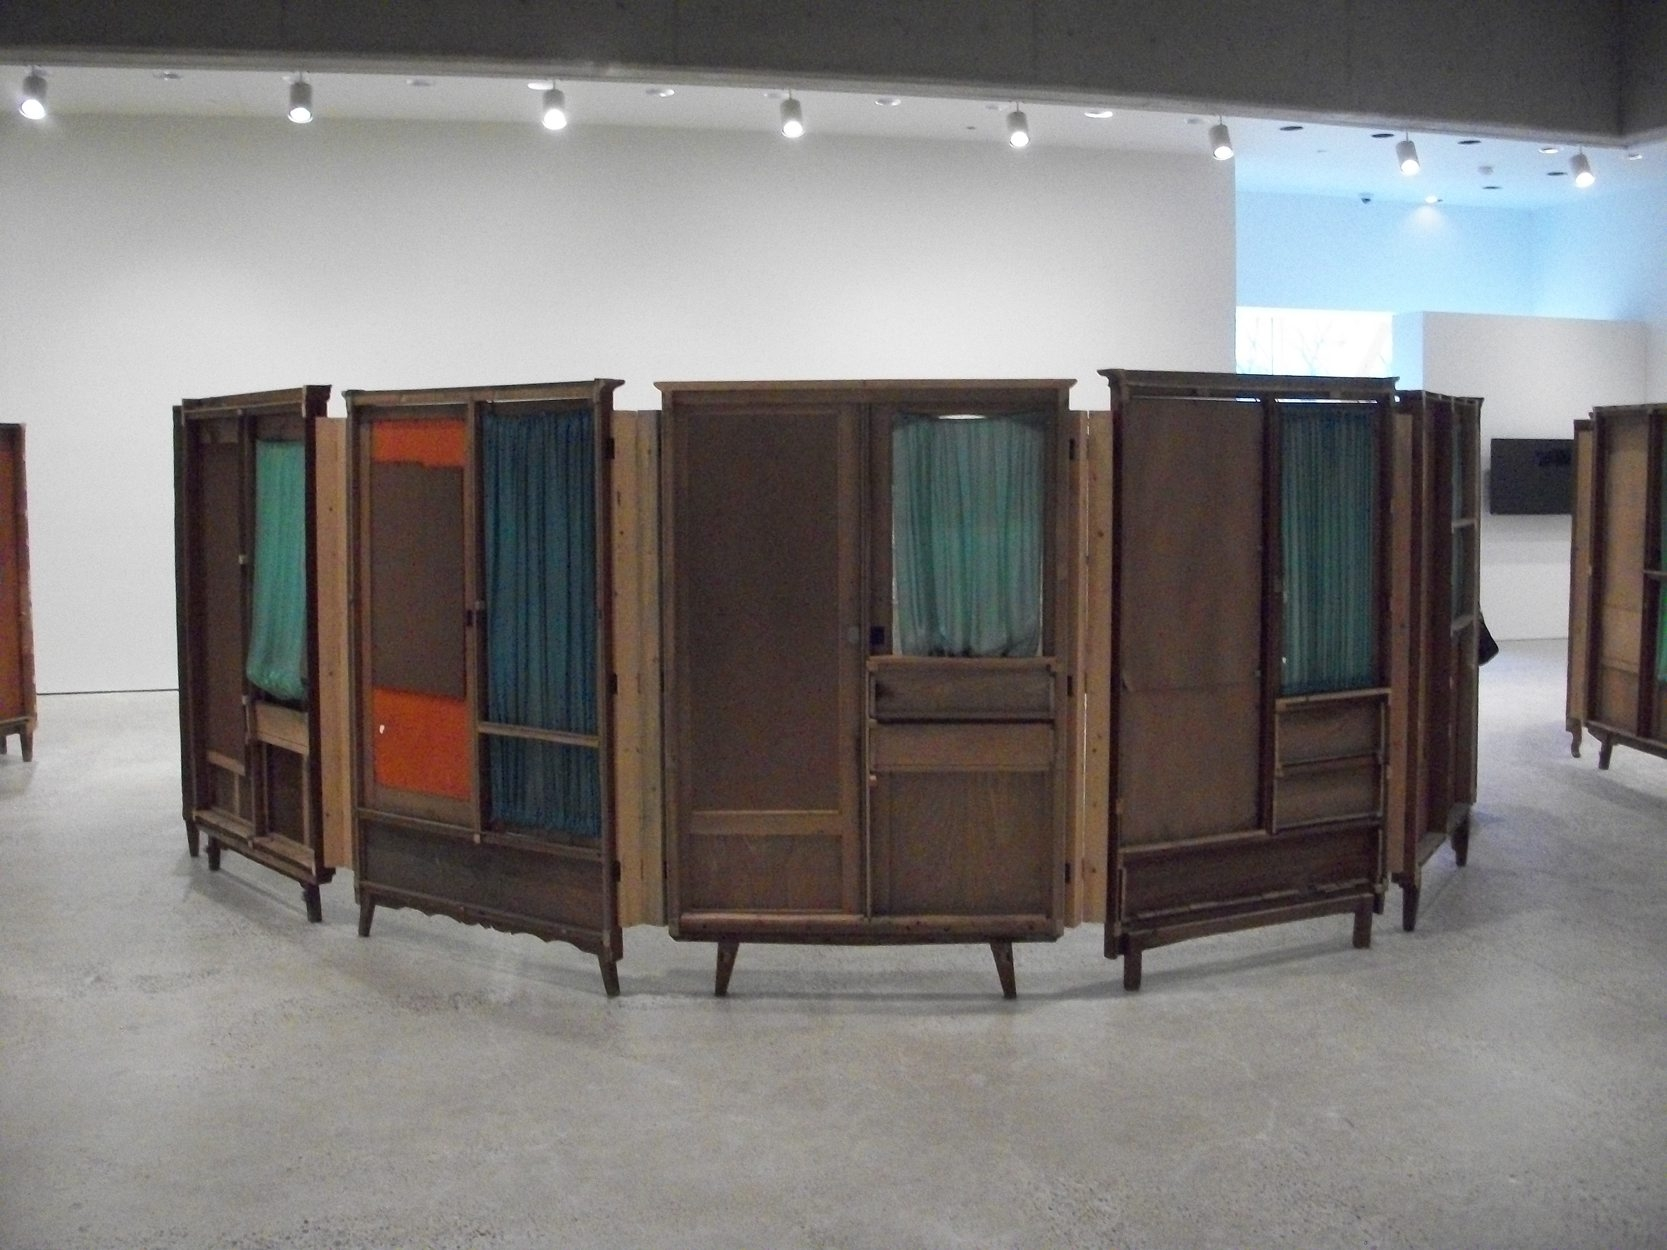 """Vintage wardrobe doors from Song Dong's """"Communal Courtyard"""" exhibit at the Art Gallery of Ontario."""